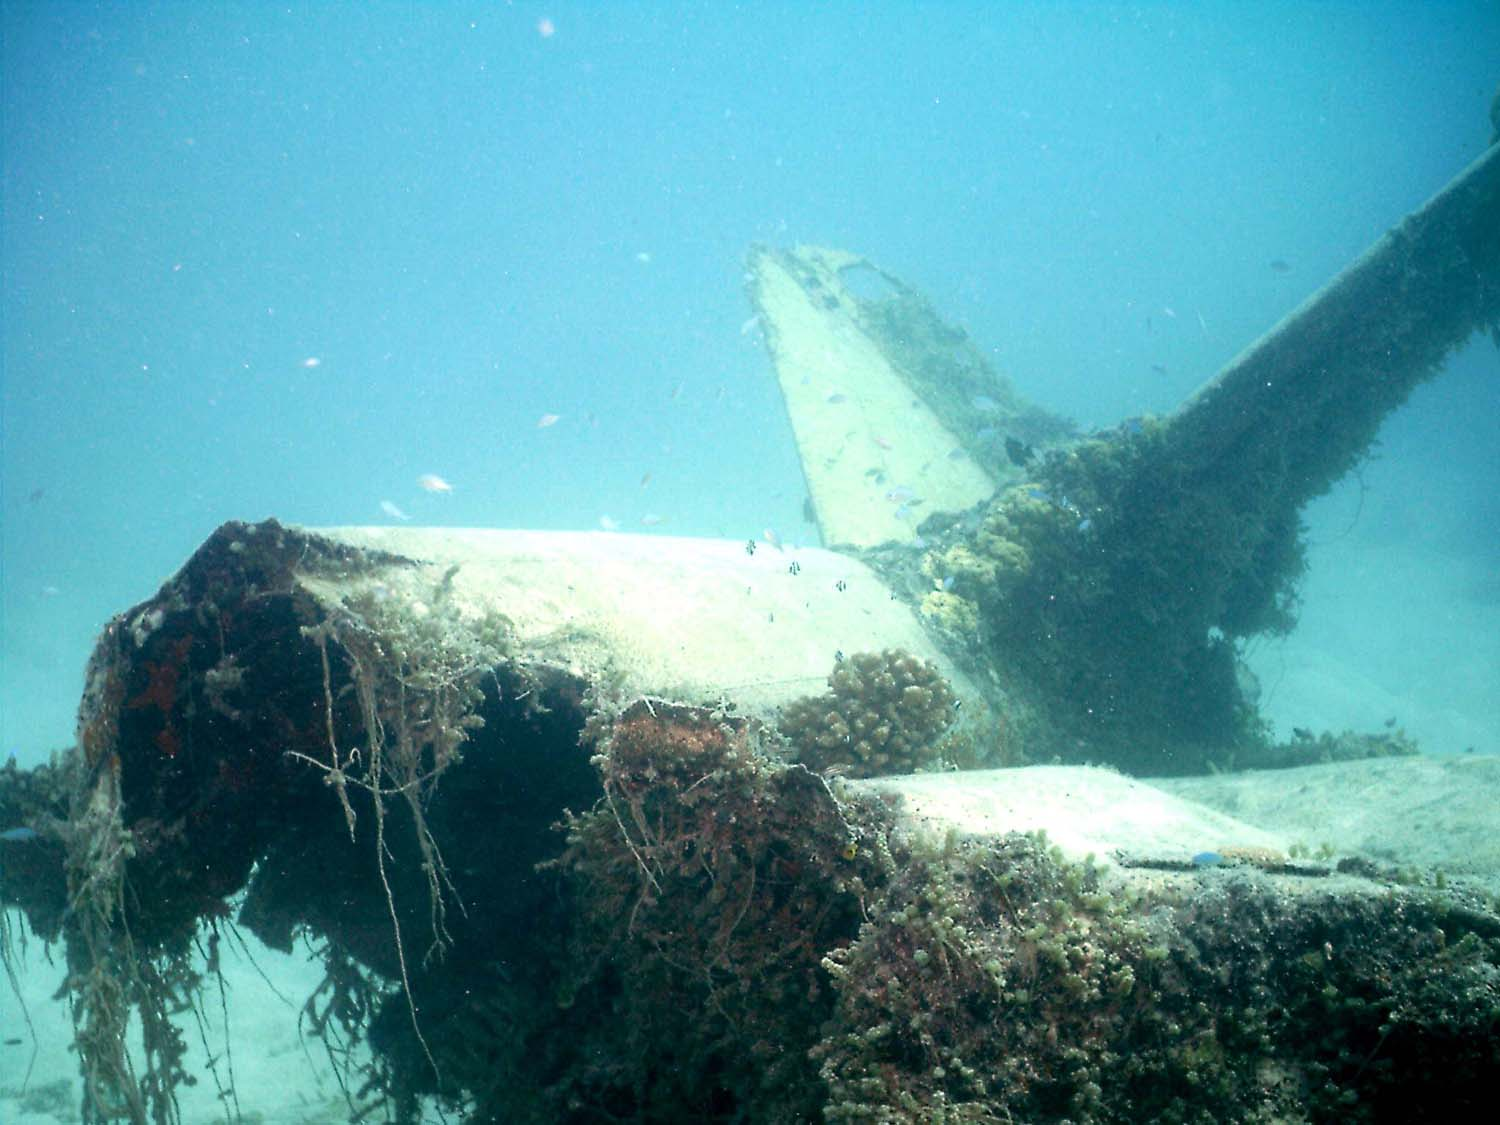 A legend of the skies, the once feared Zero fighter now lies on the seabed